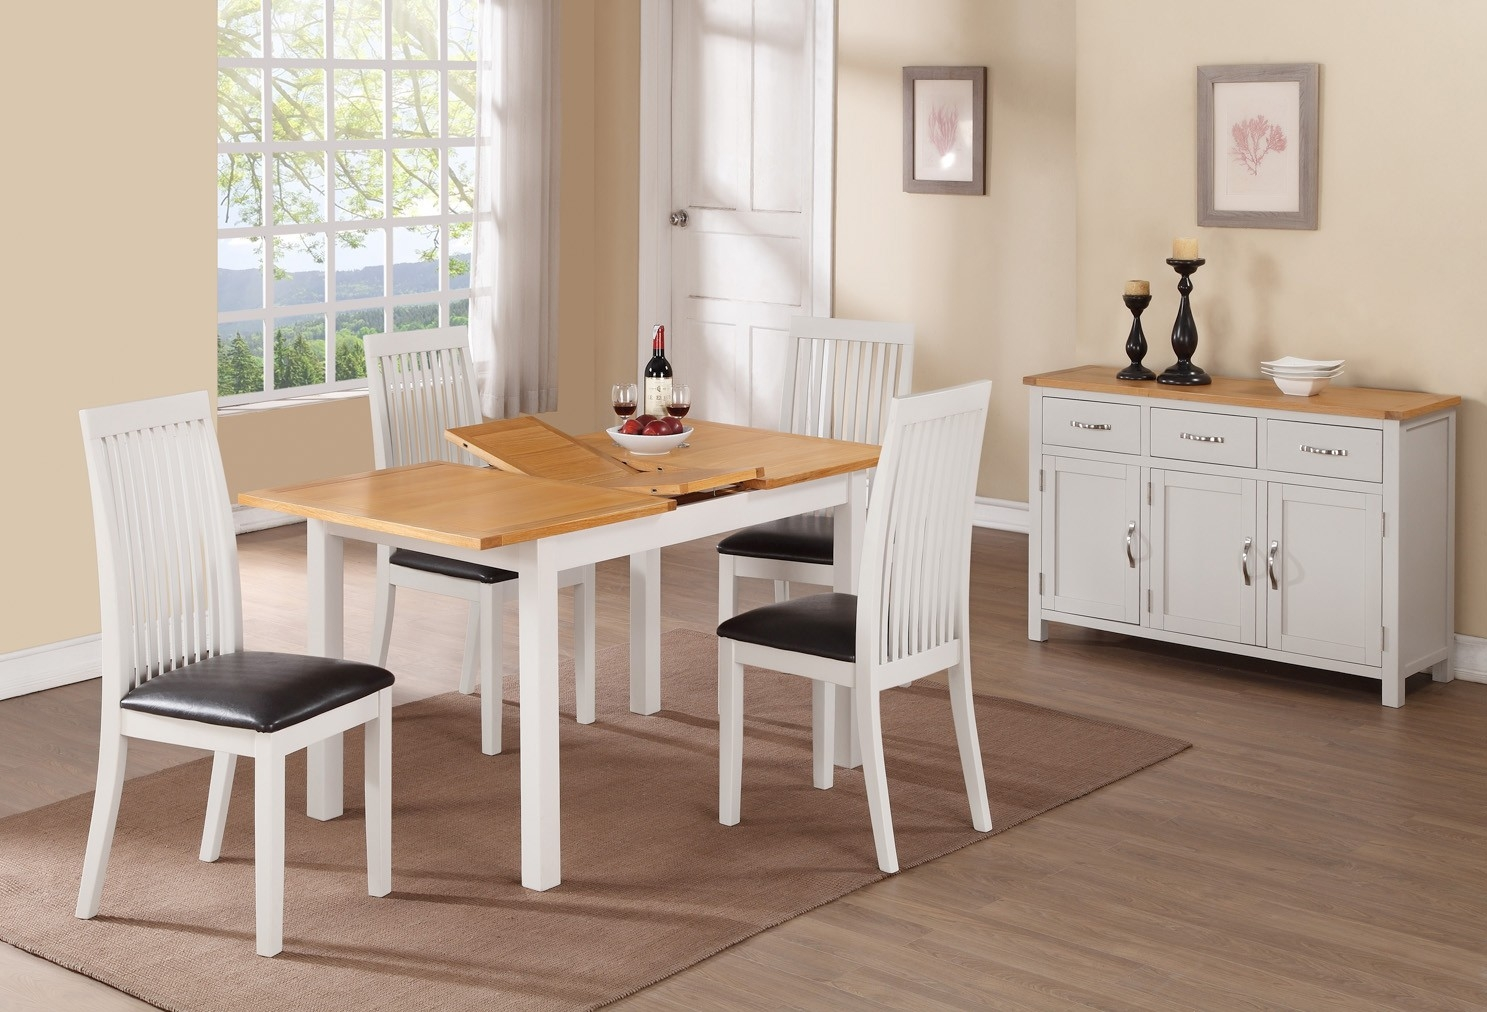 Hartford Painted Rectangular Extending Dining Set with 6 Chairs - 120cm-150cm